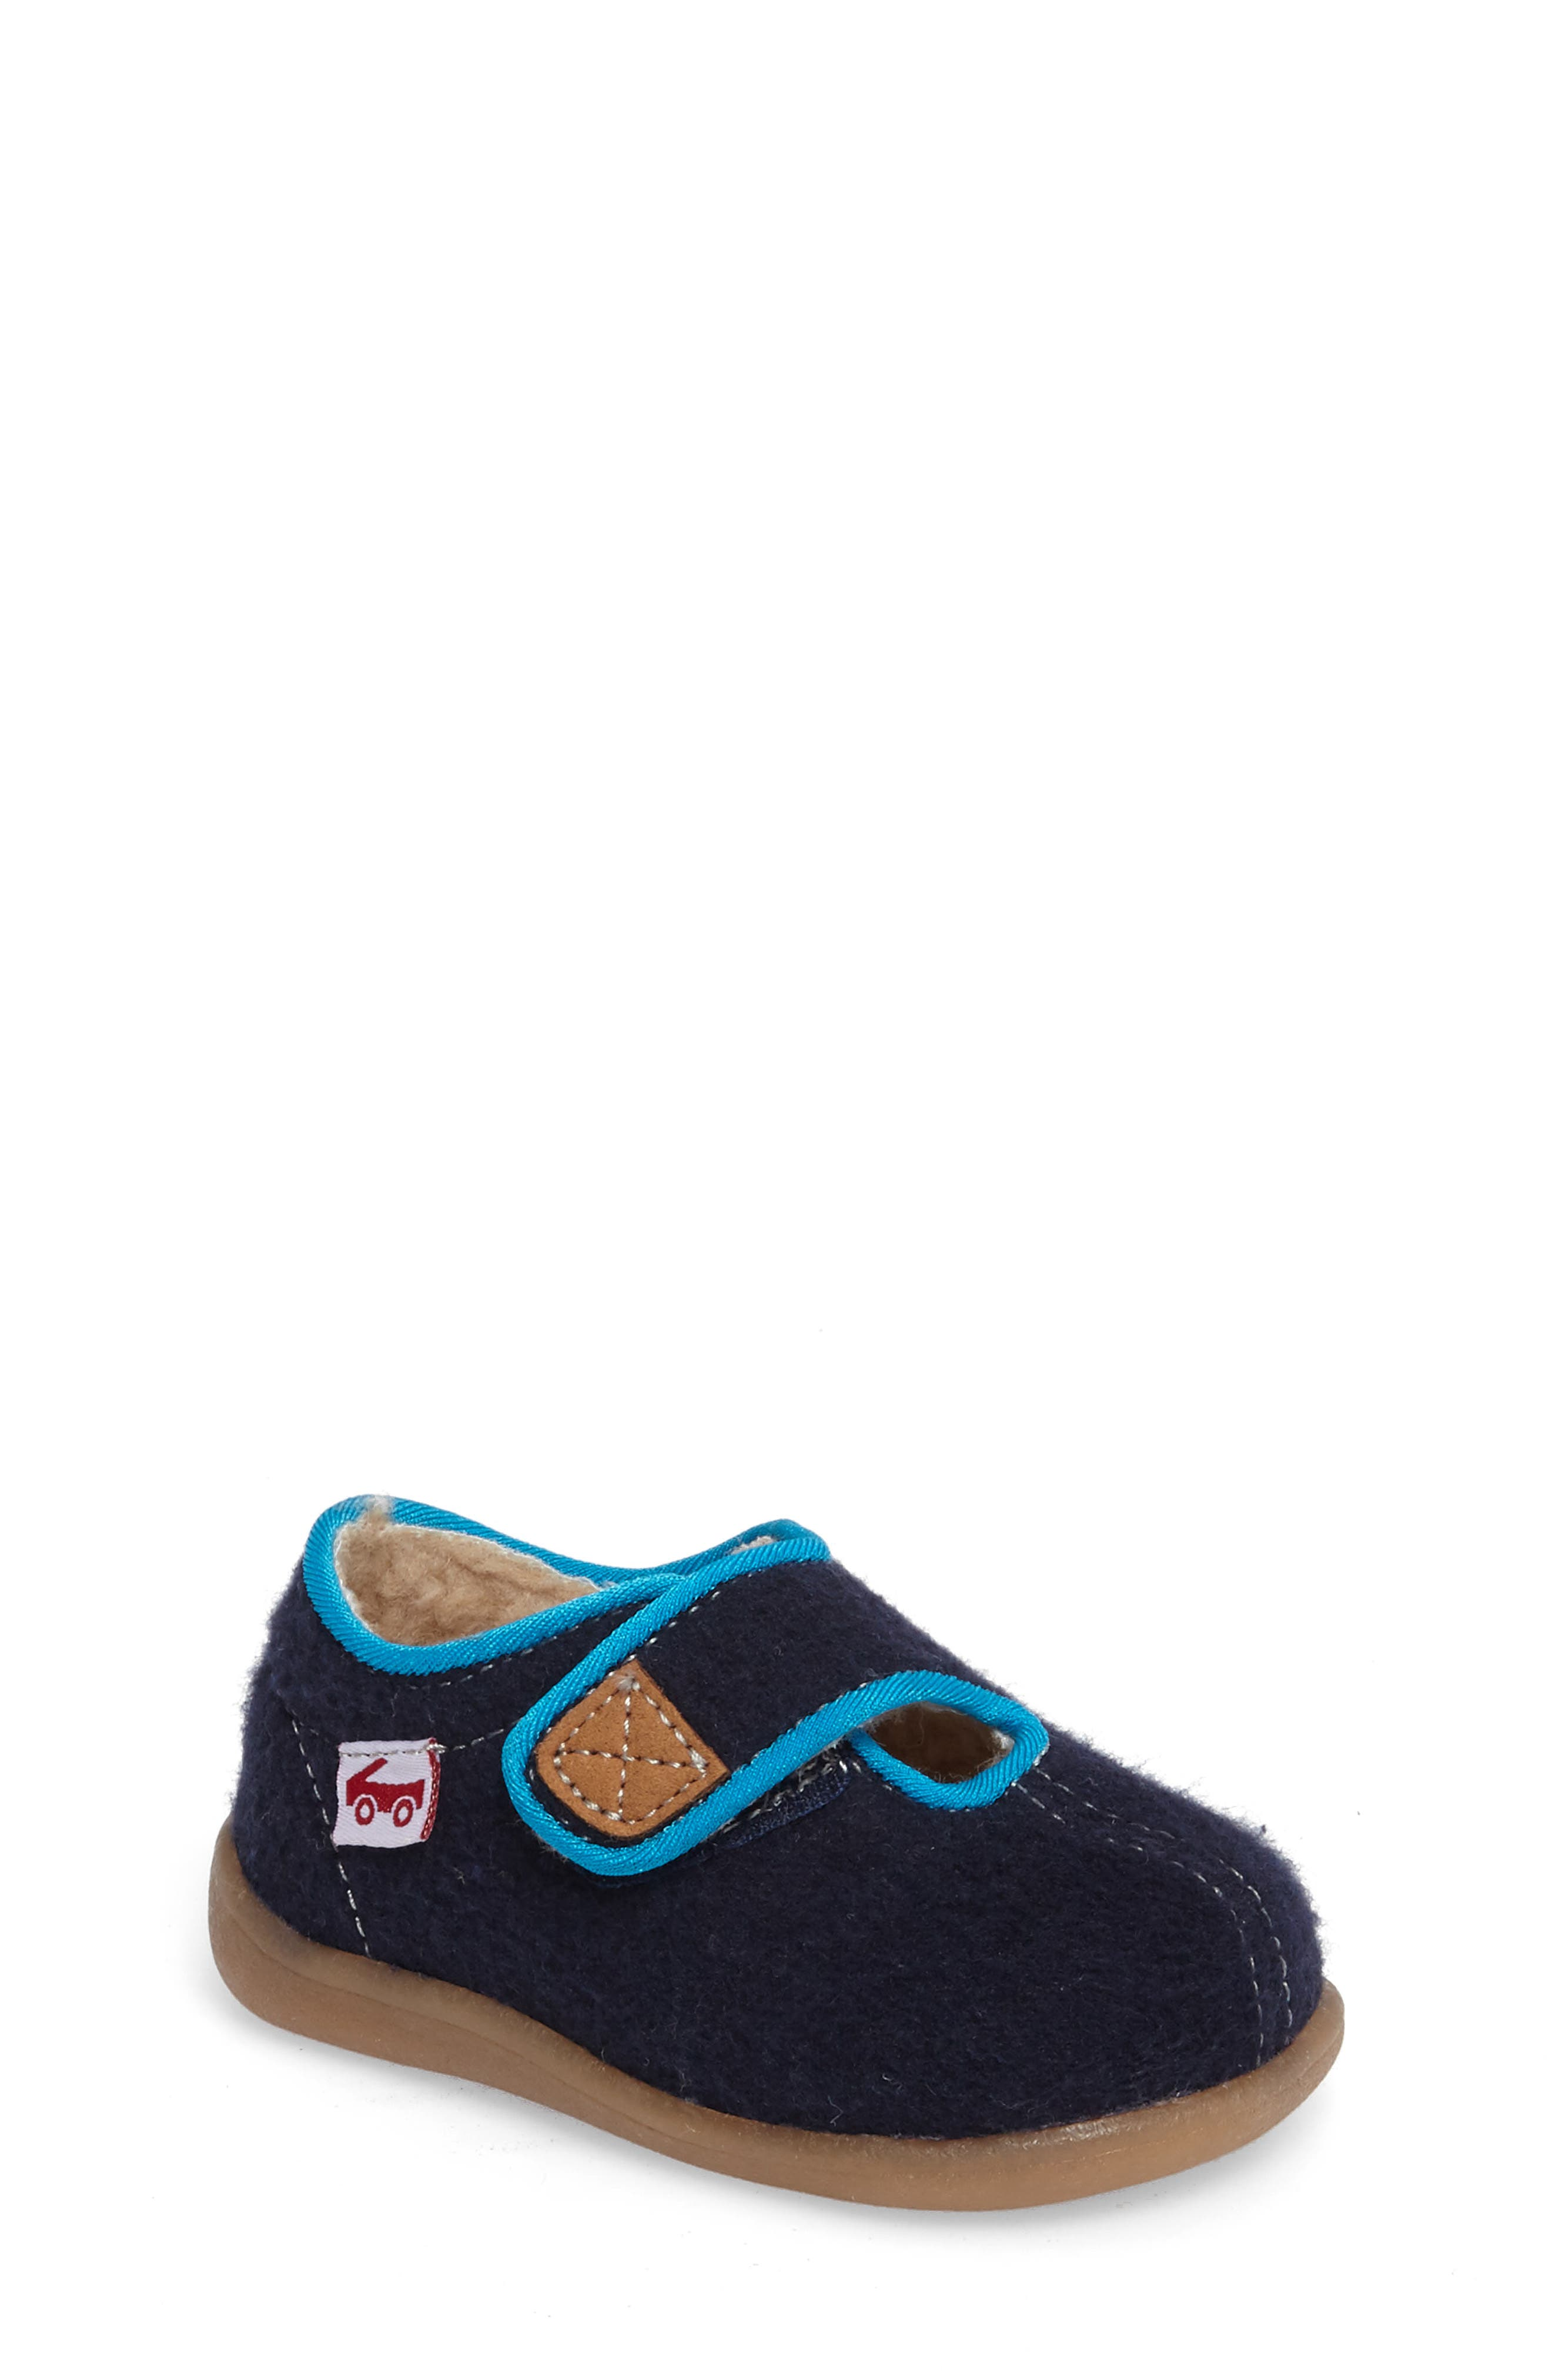 Cruz Slipper,                             Main thumbnail 1, color,                             Navy